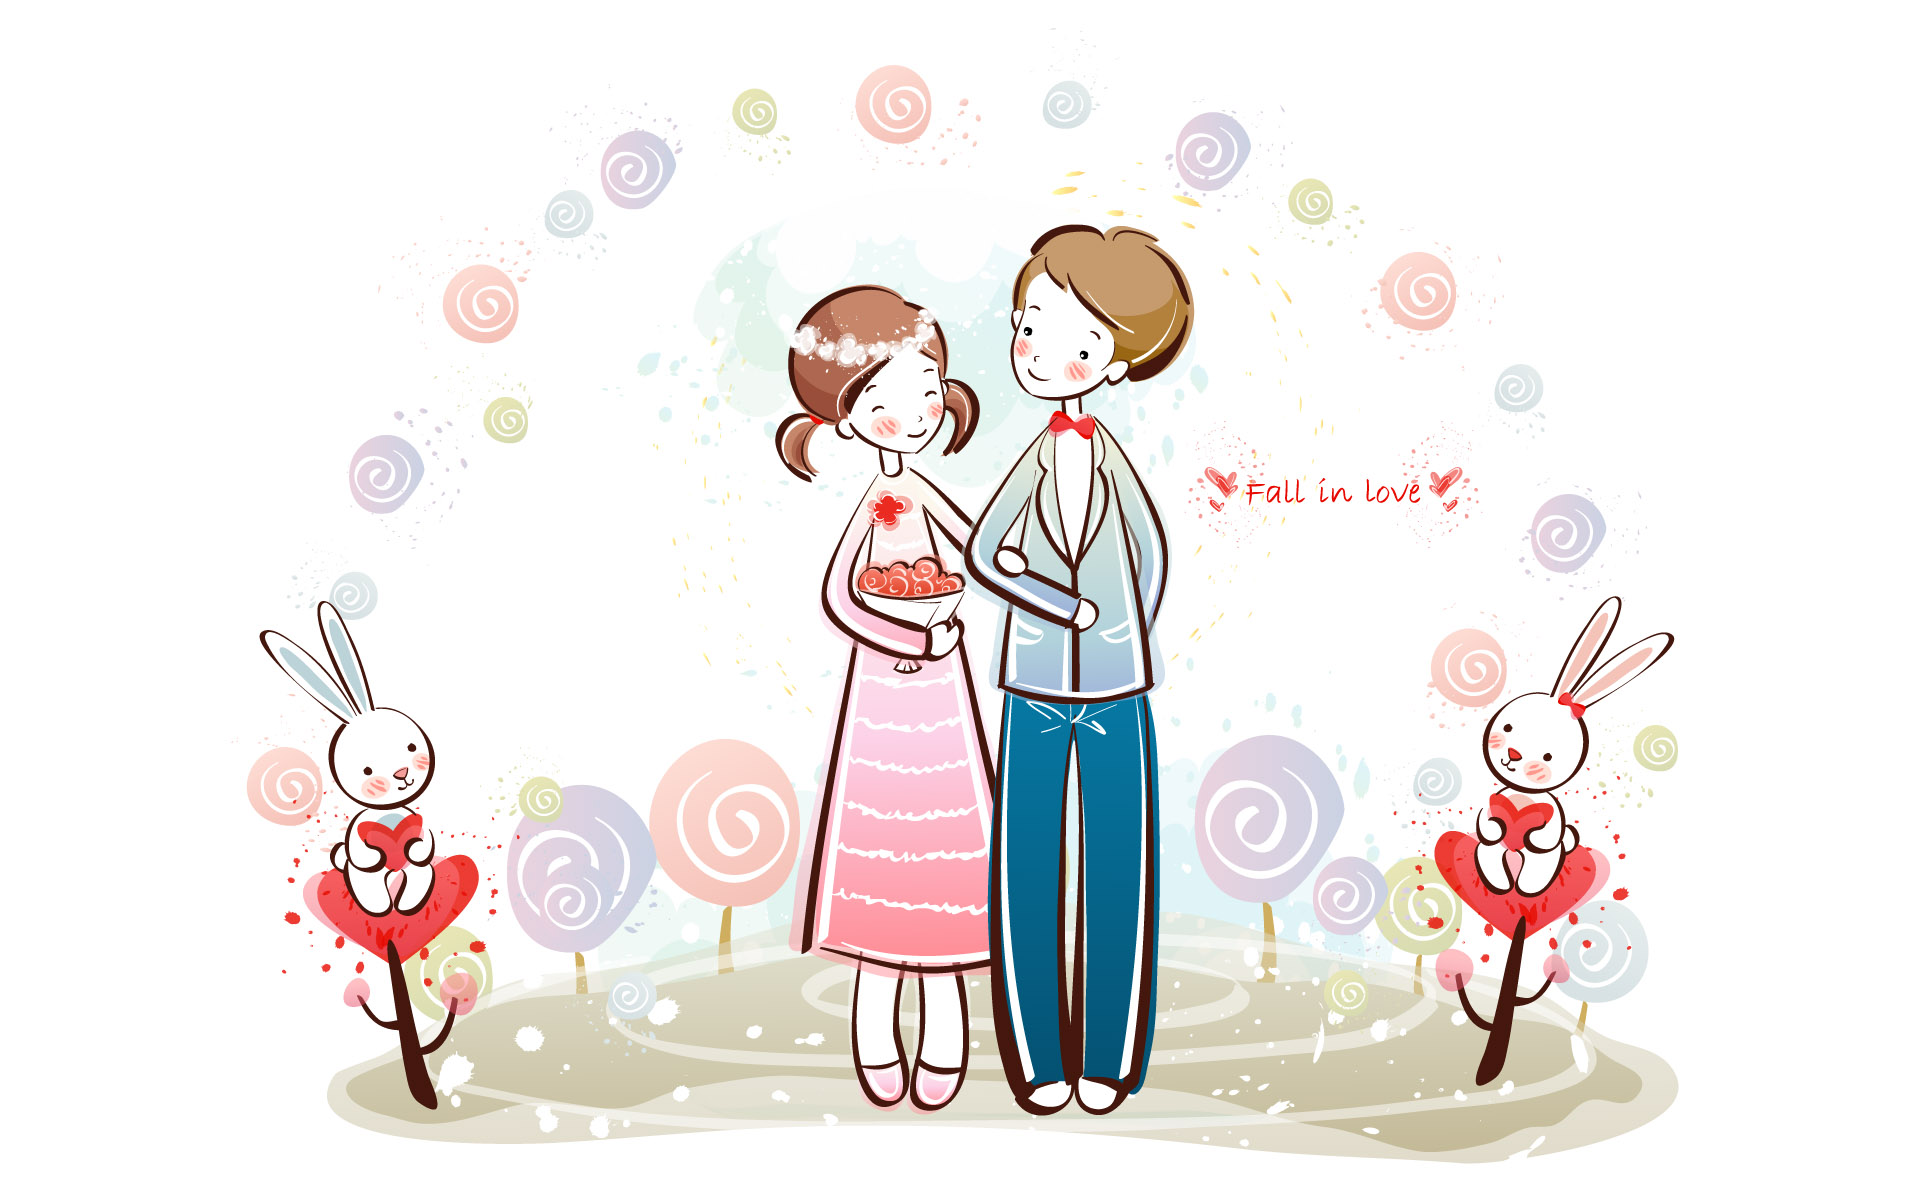 Hd Wallpaper Of cartoon Love couple : Diantara Kita Bercinta